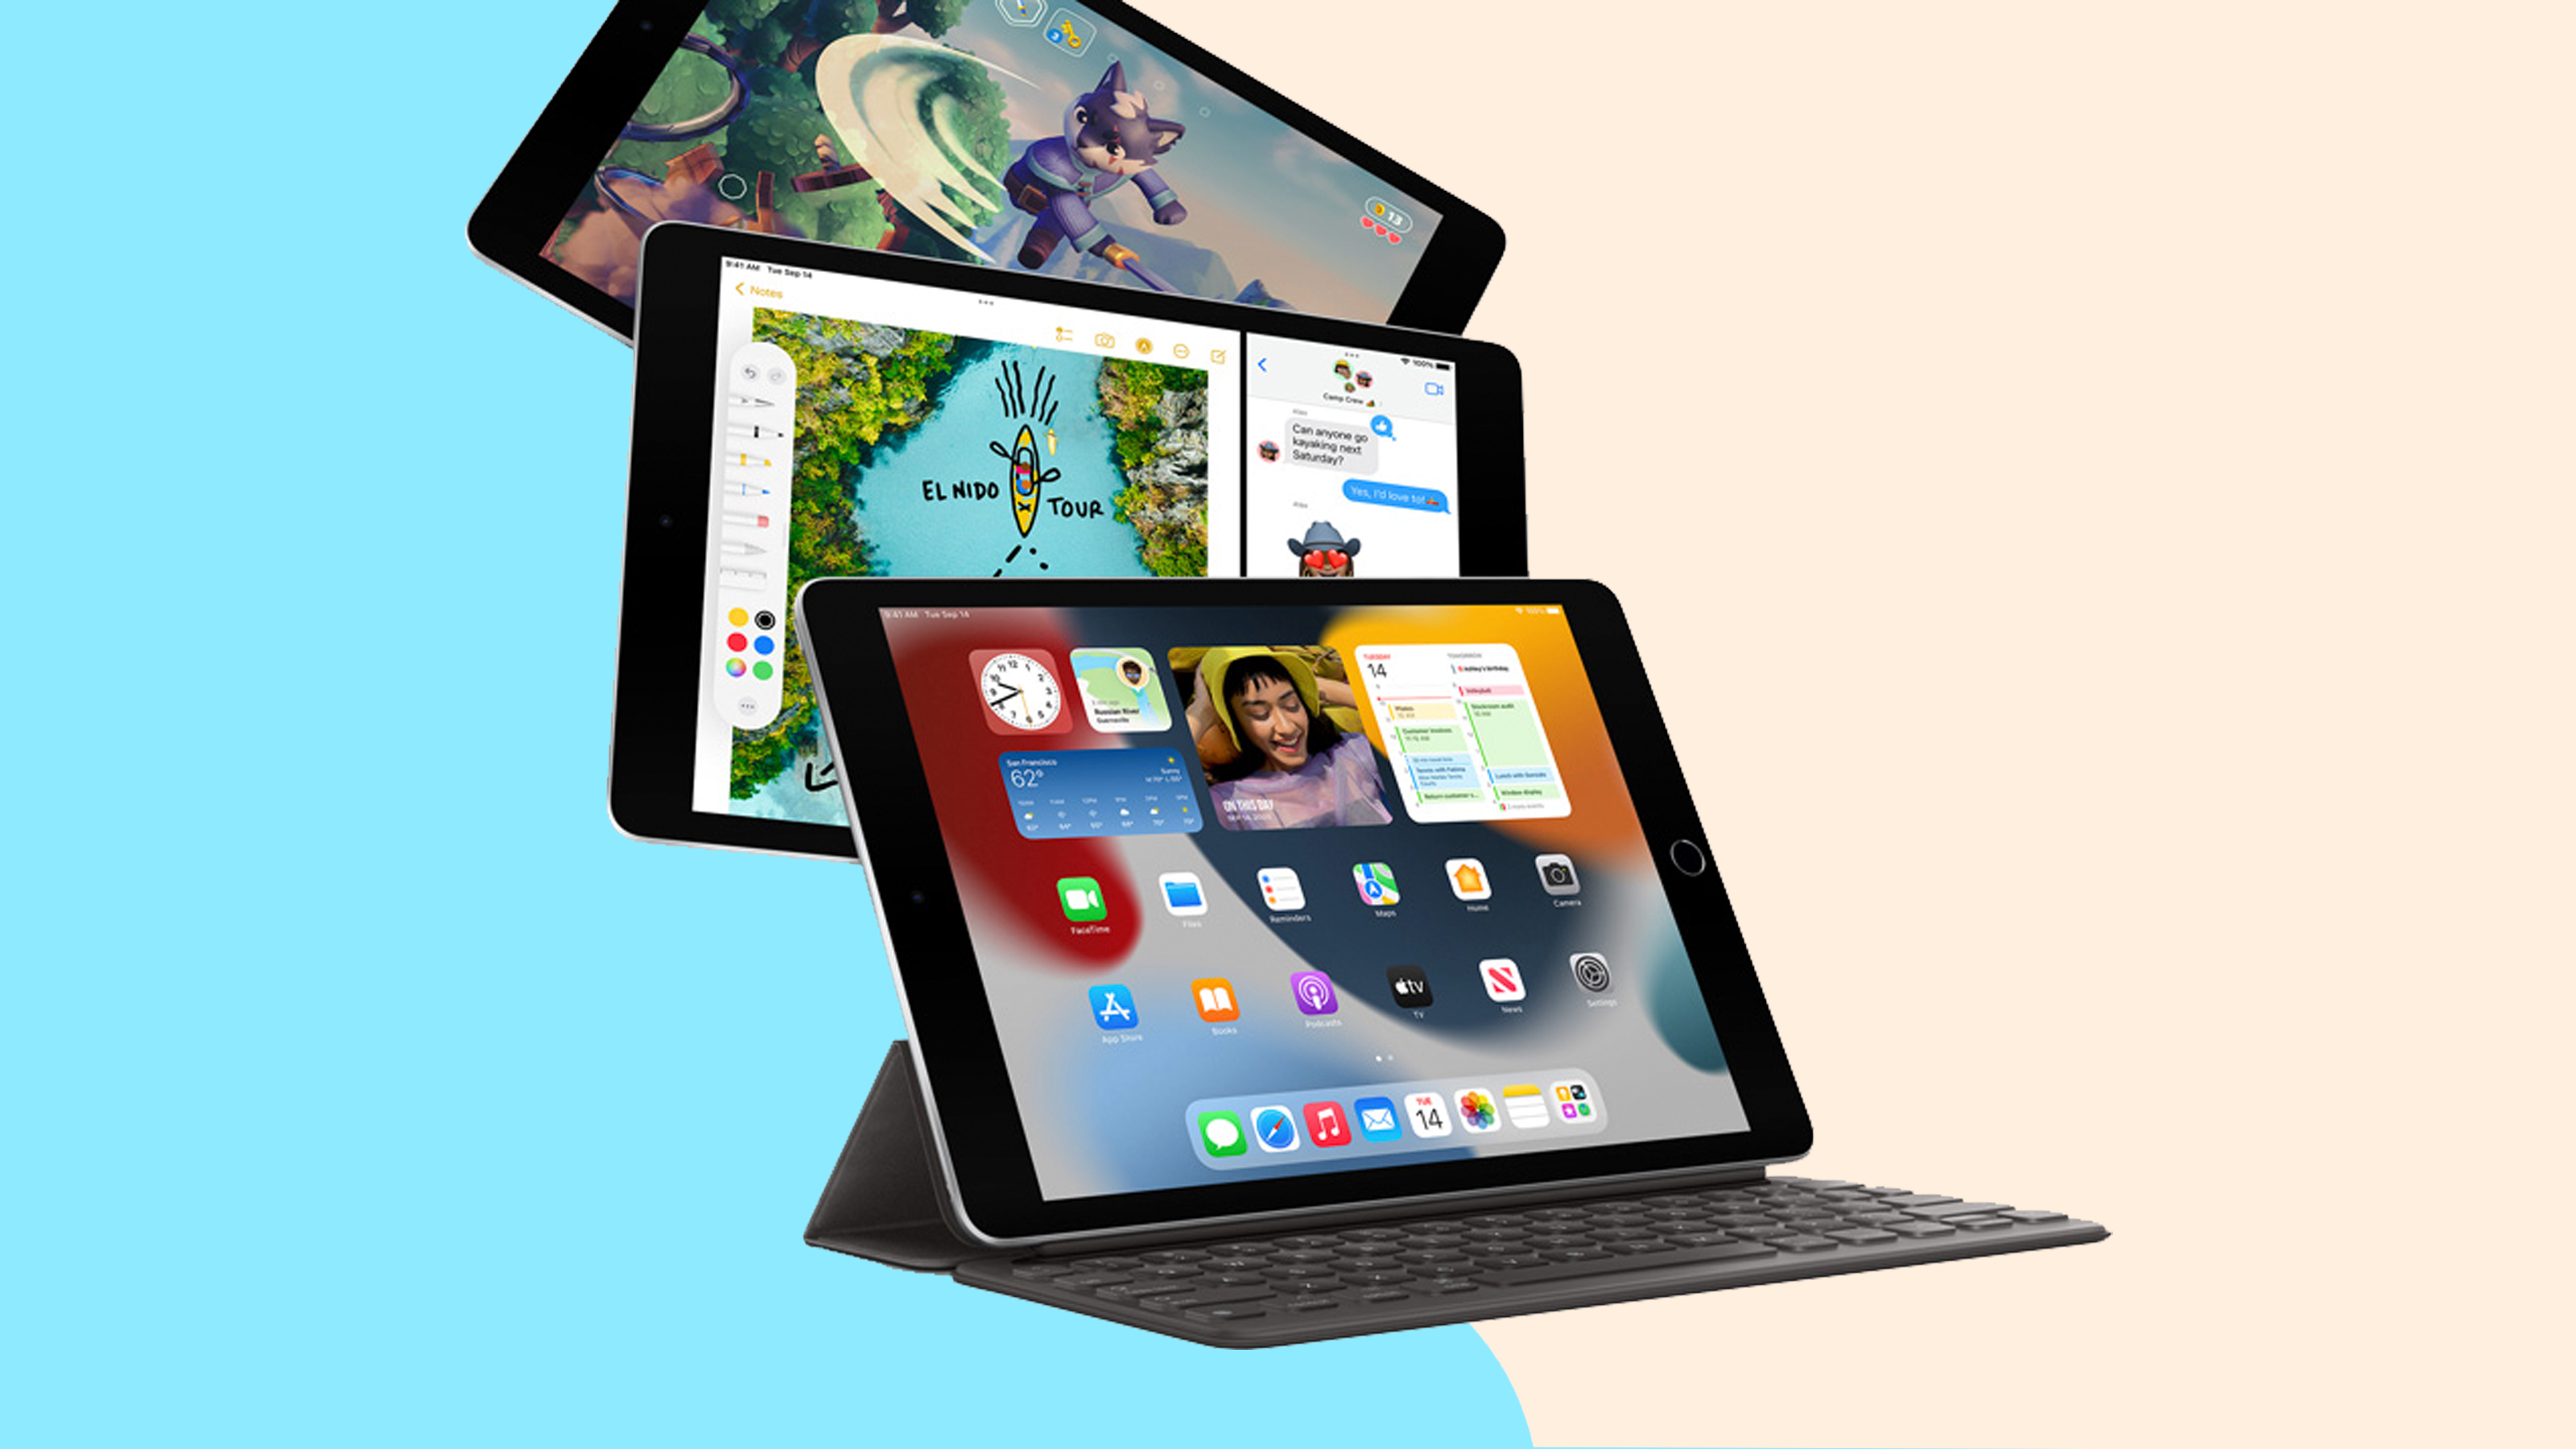 Right now you can pre-order the new Apple iPad from Walmart for $30 off the MSRP